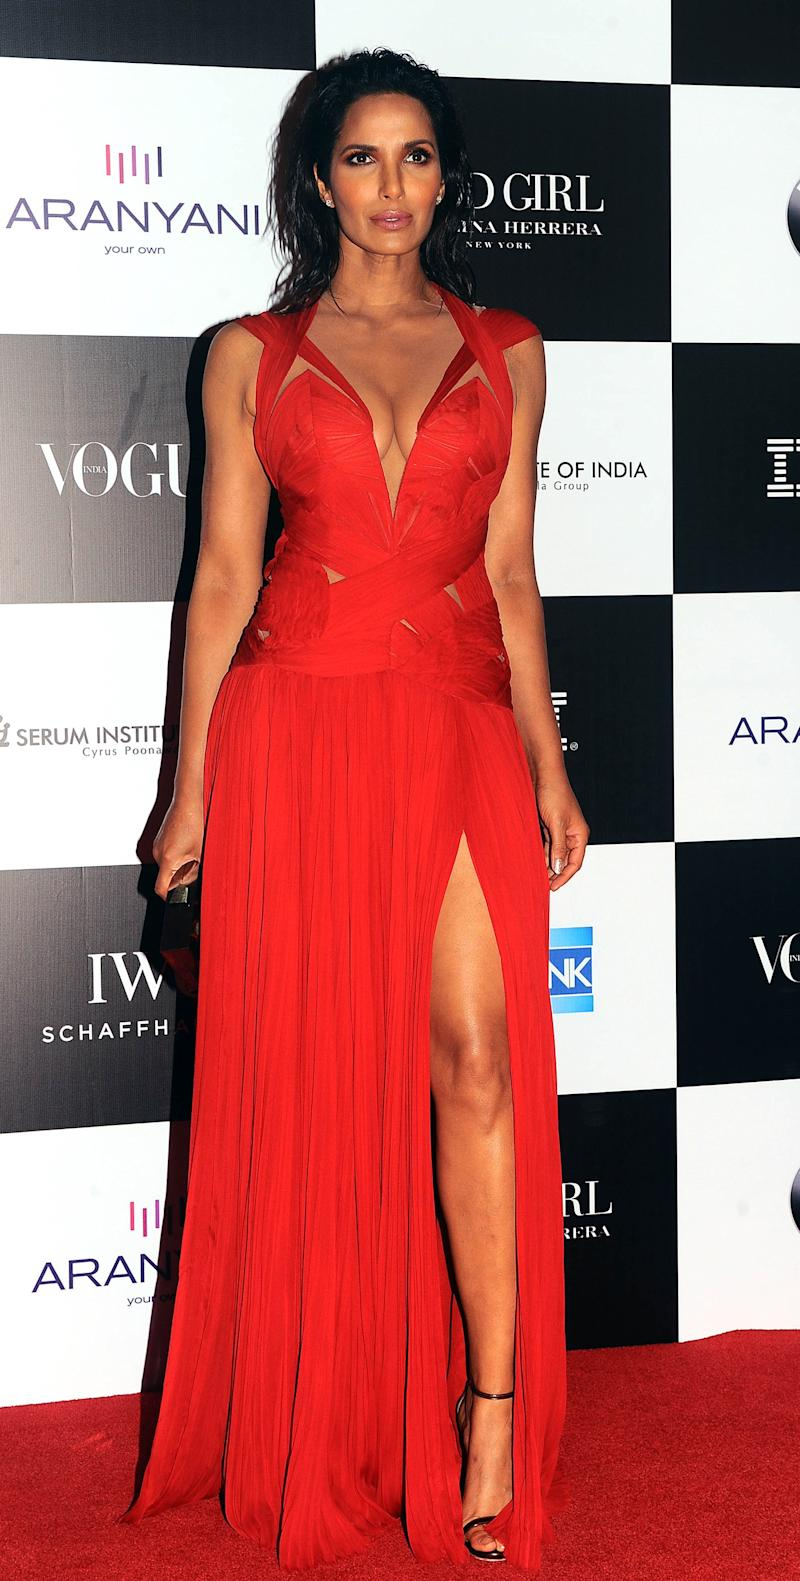 Indian model and actress Padma Lakshmi poses for a photo during the 10th edition of the 'Vogue Women of the Year Awards' event in Mumbai on September 24, 2017.